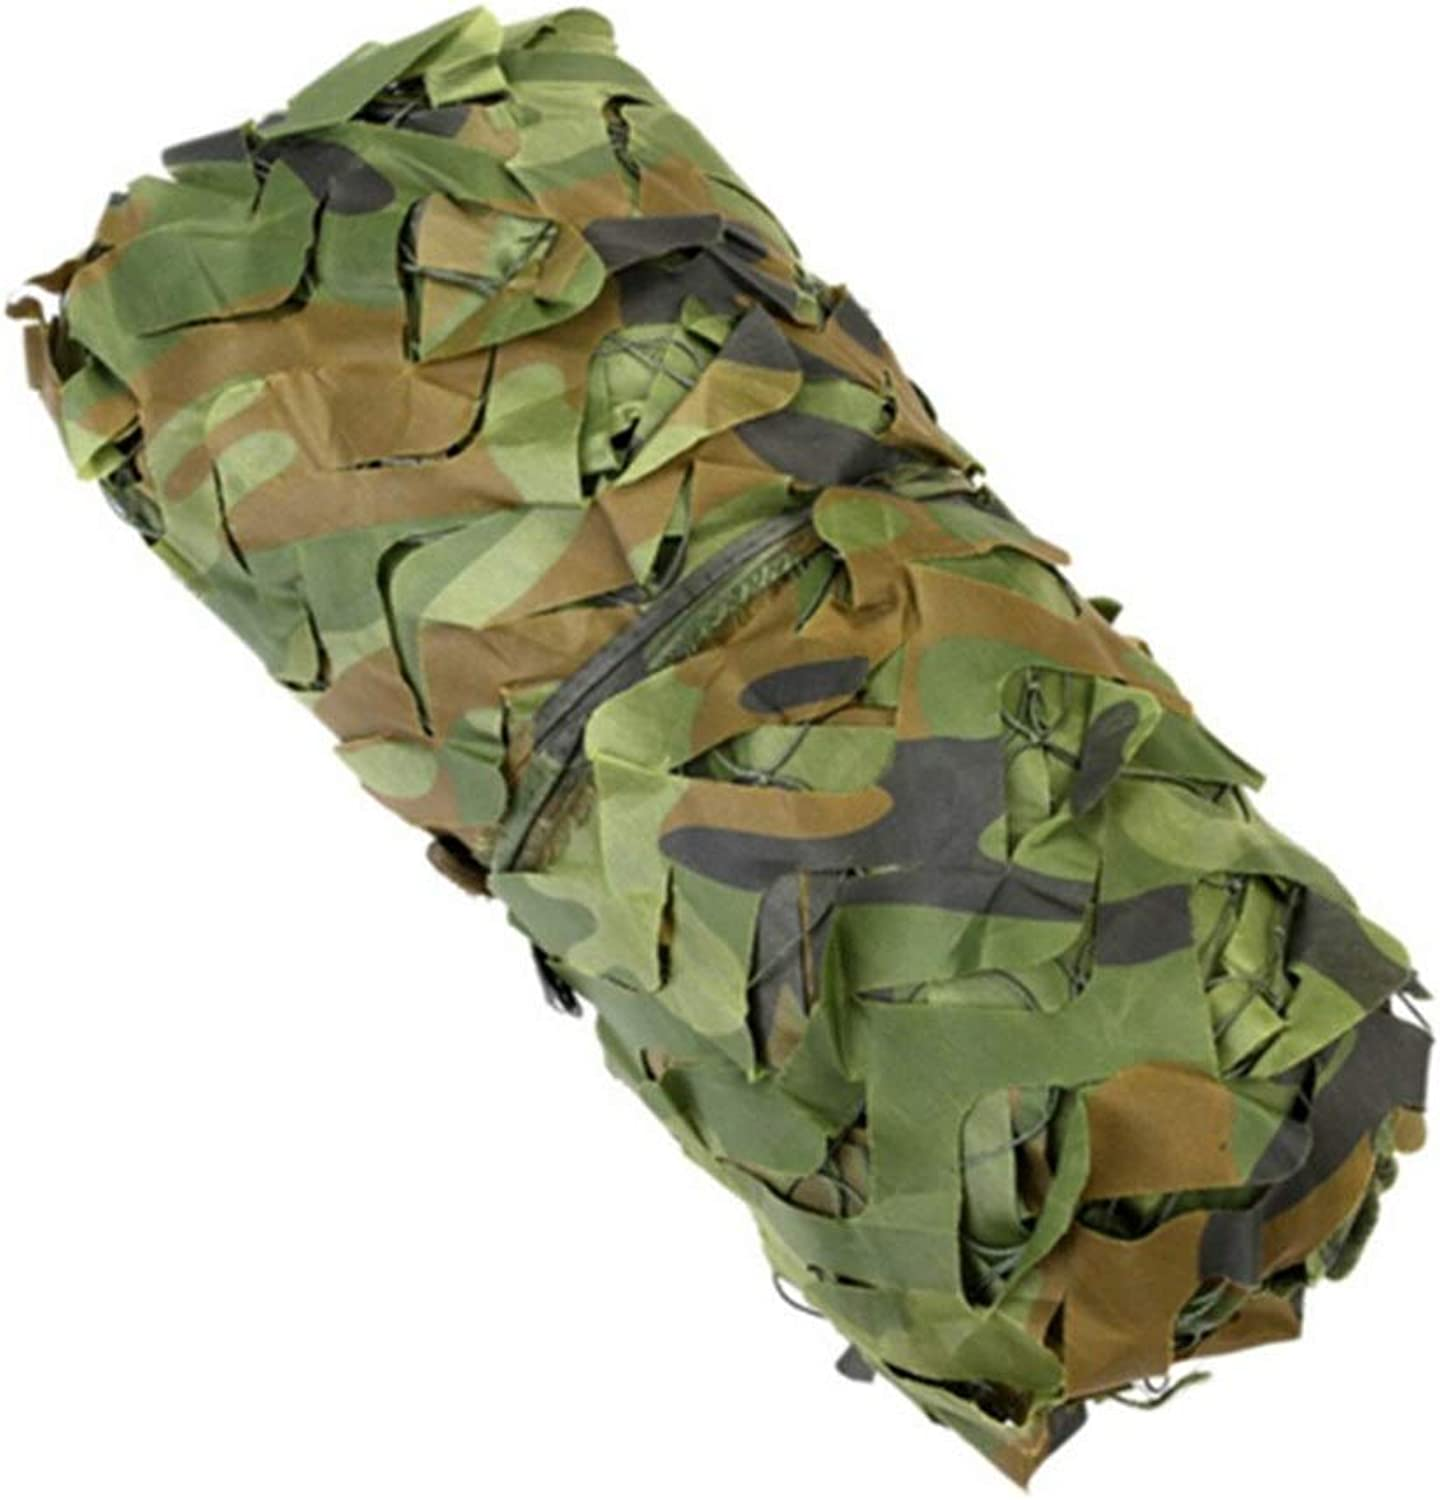 XEWNEG Jungle Camouflage Net, Waterproof and Lightweight Oxford Sunshade, Used for Blinds Camping Shooting Party Decoration